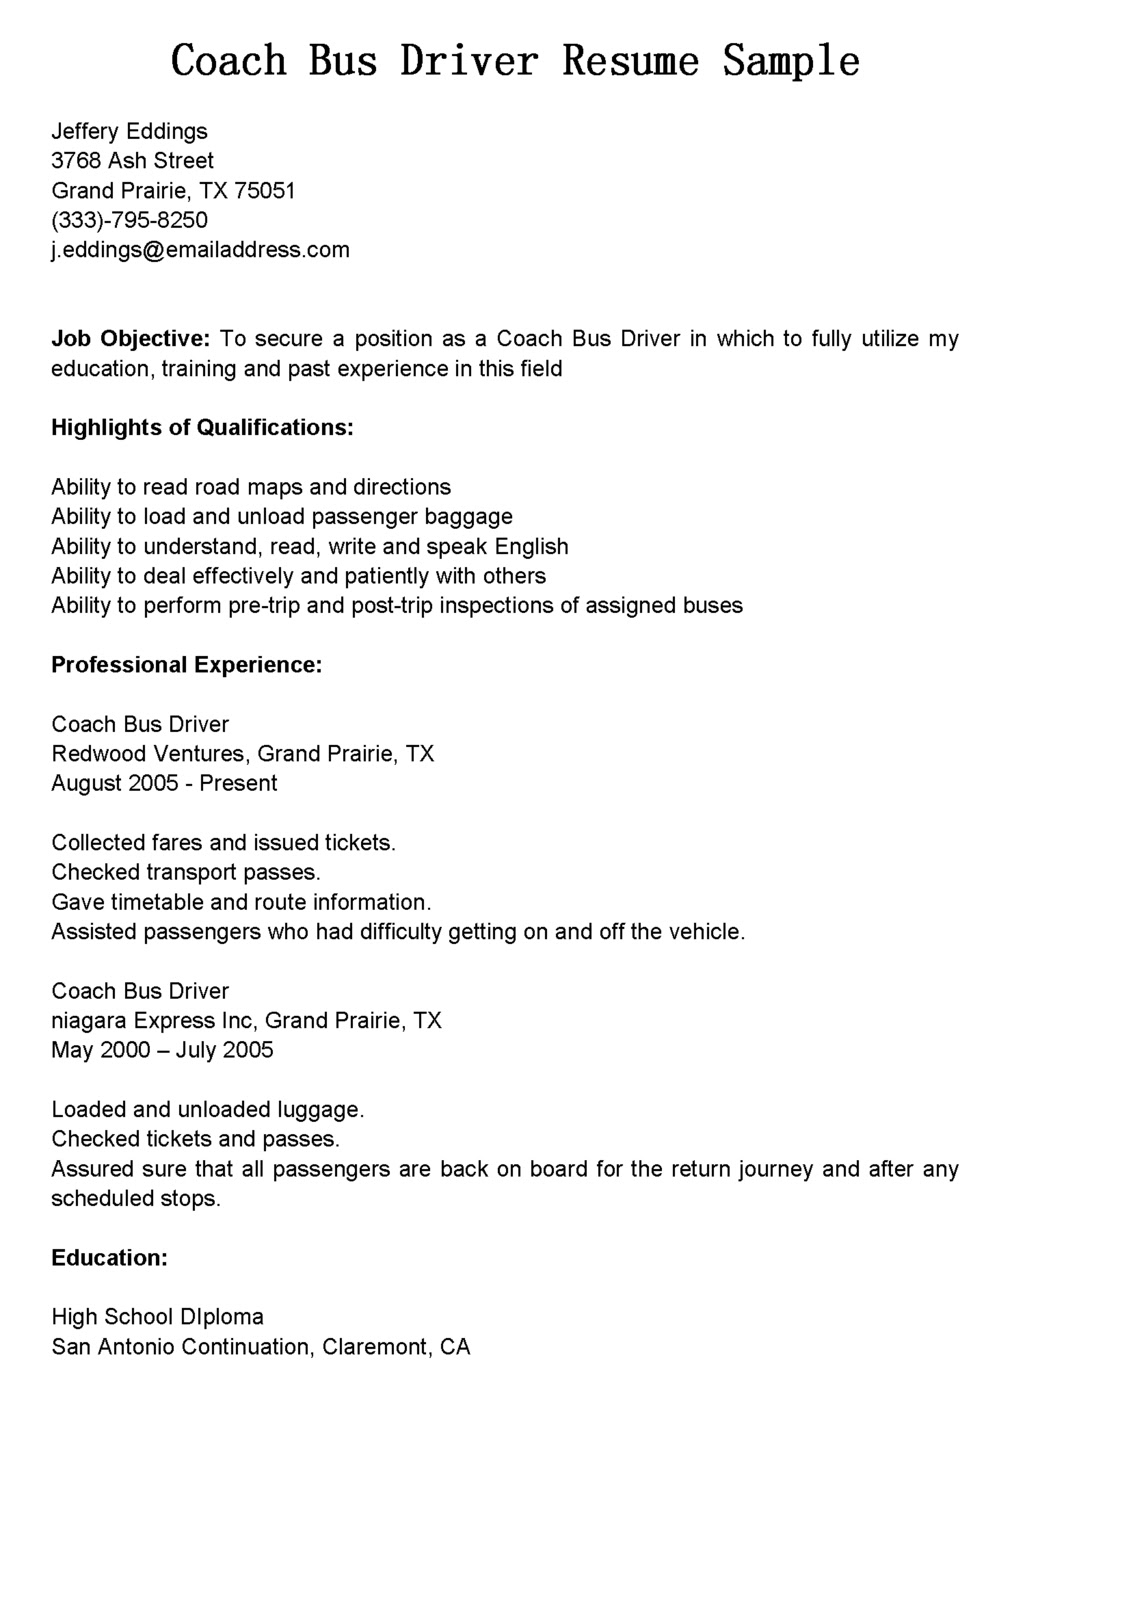 sample truck driver resume gotta yotti for bus position coach create golf linux device Resume Resume For Bus Driver Position